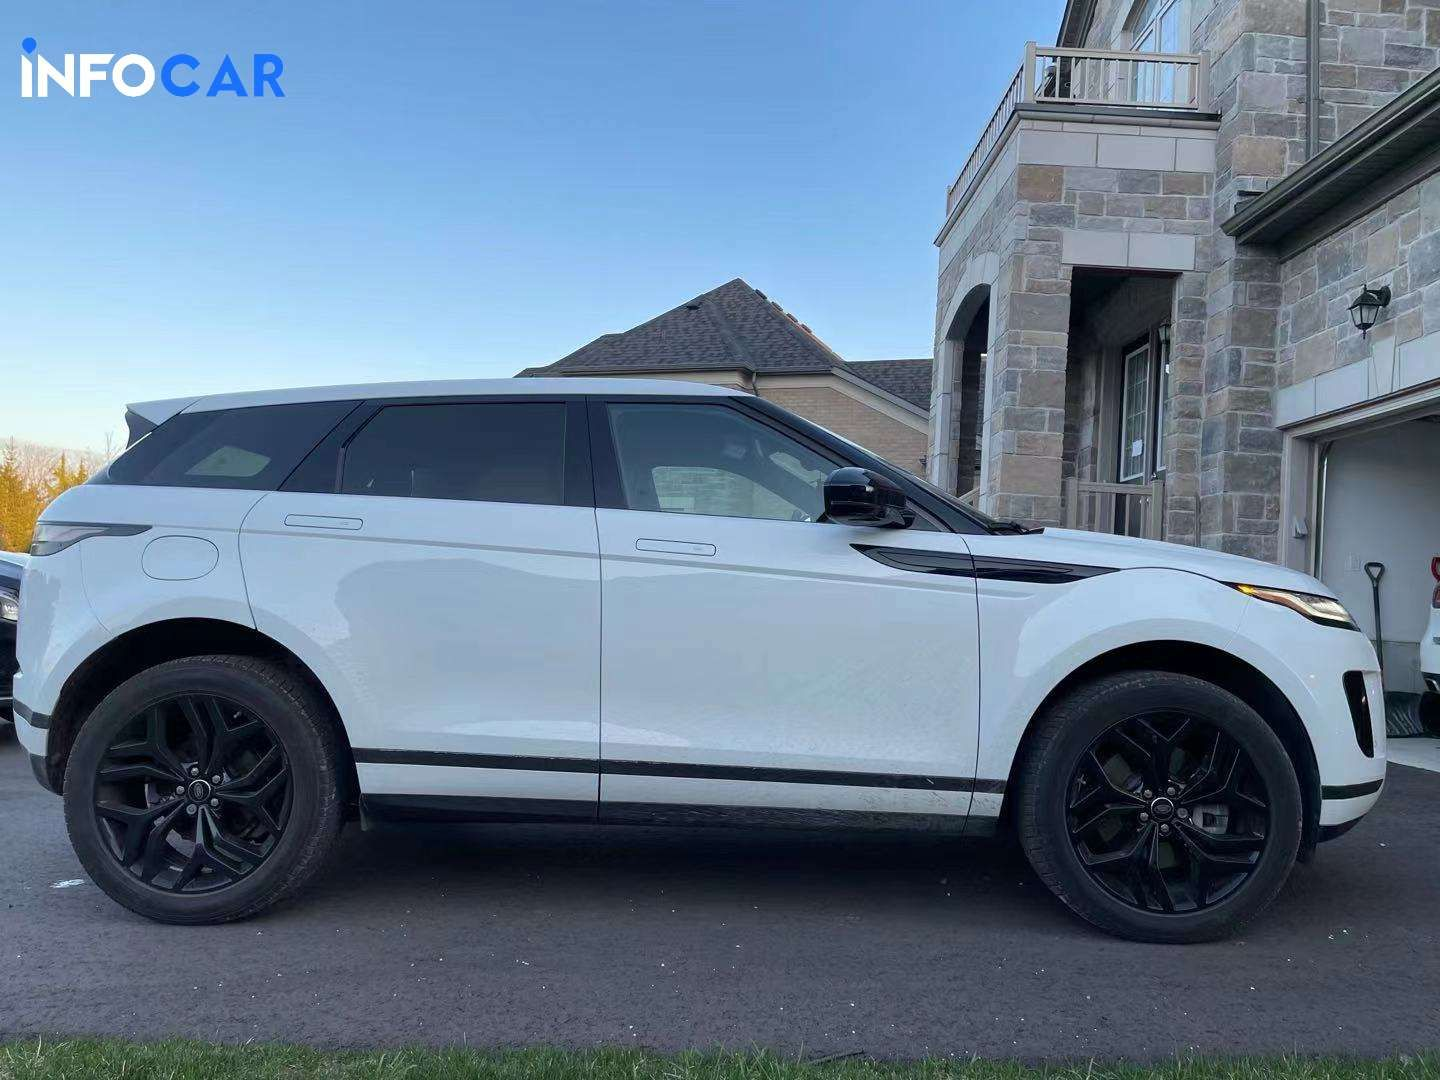 2020 Land Rover Range Rover Evoque null - INFOCAR - Toronto's Most Comprehensive New and Used Auto Trading Platform